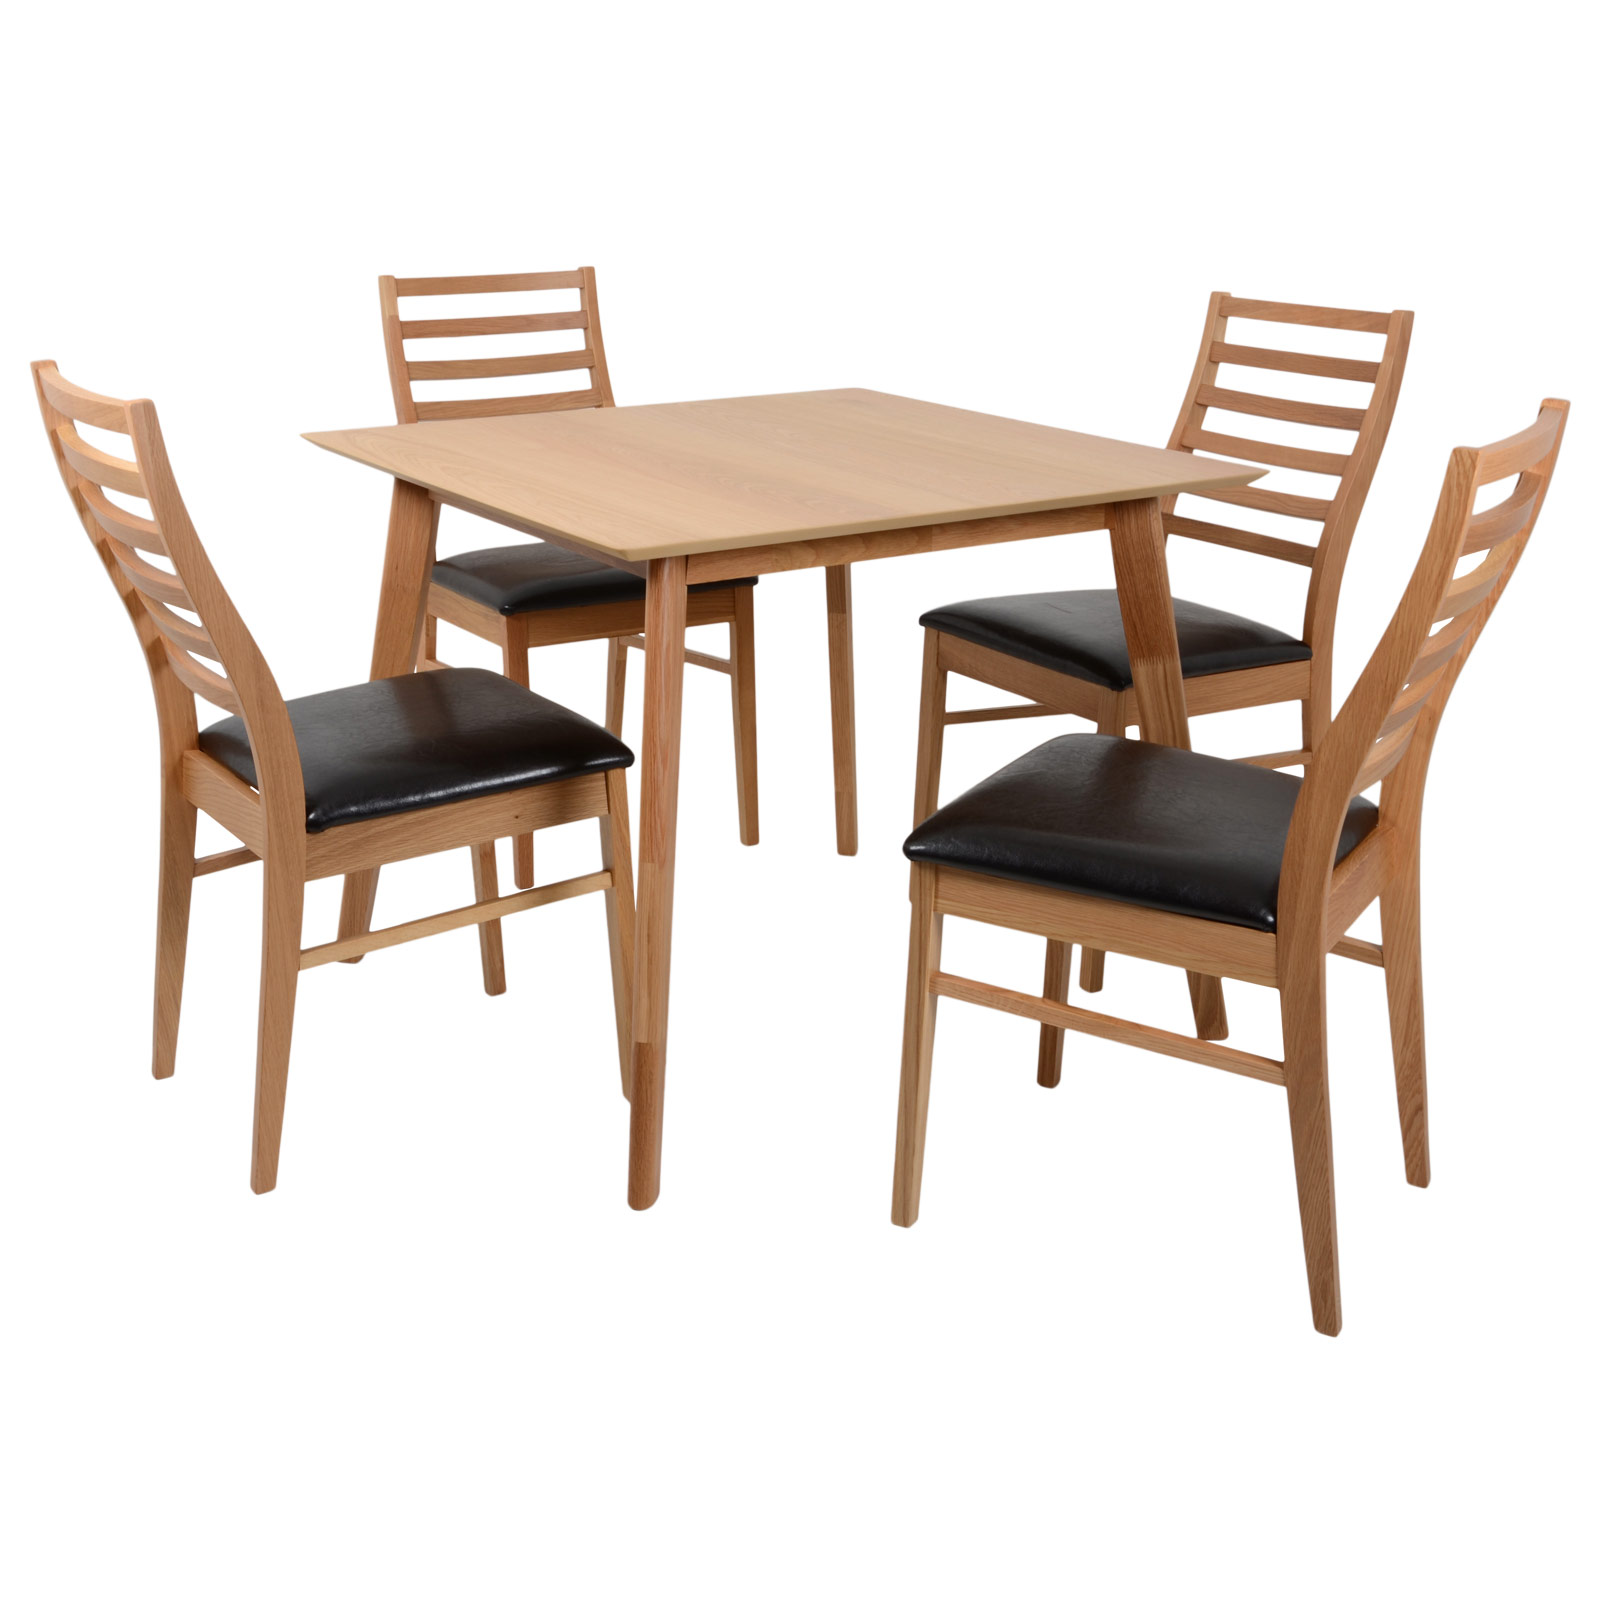 Amazing photo of  Round/Square Oak Wooden Dining Table Furniture Set / 4 Wooden Chairs with #734728 color and 1600x1600 pixels